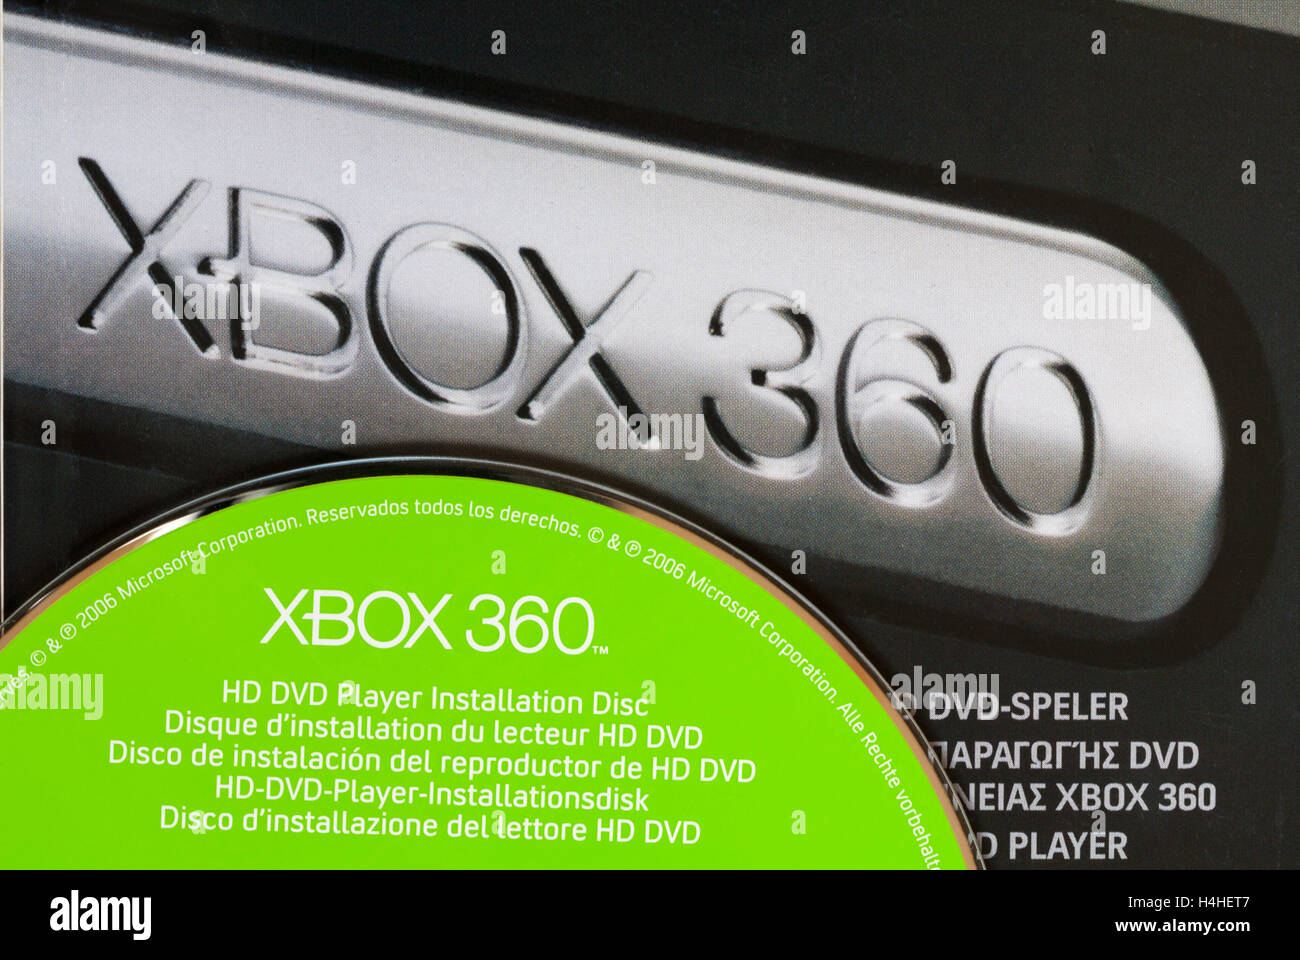 hight resolution of xbox 360 hd dvd player installation disc on box stock image